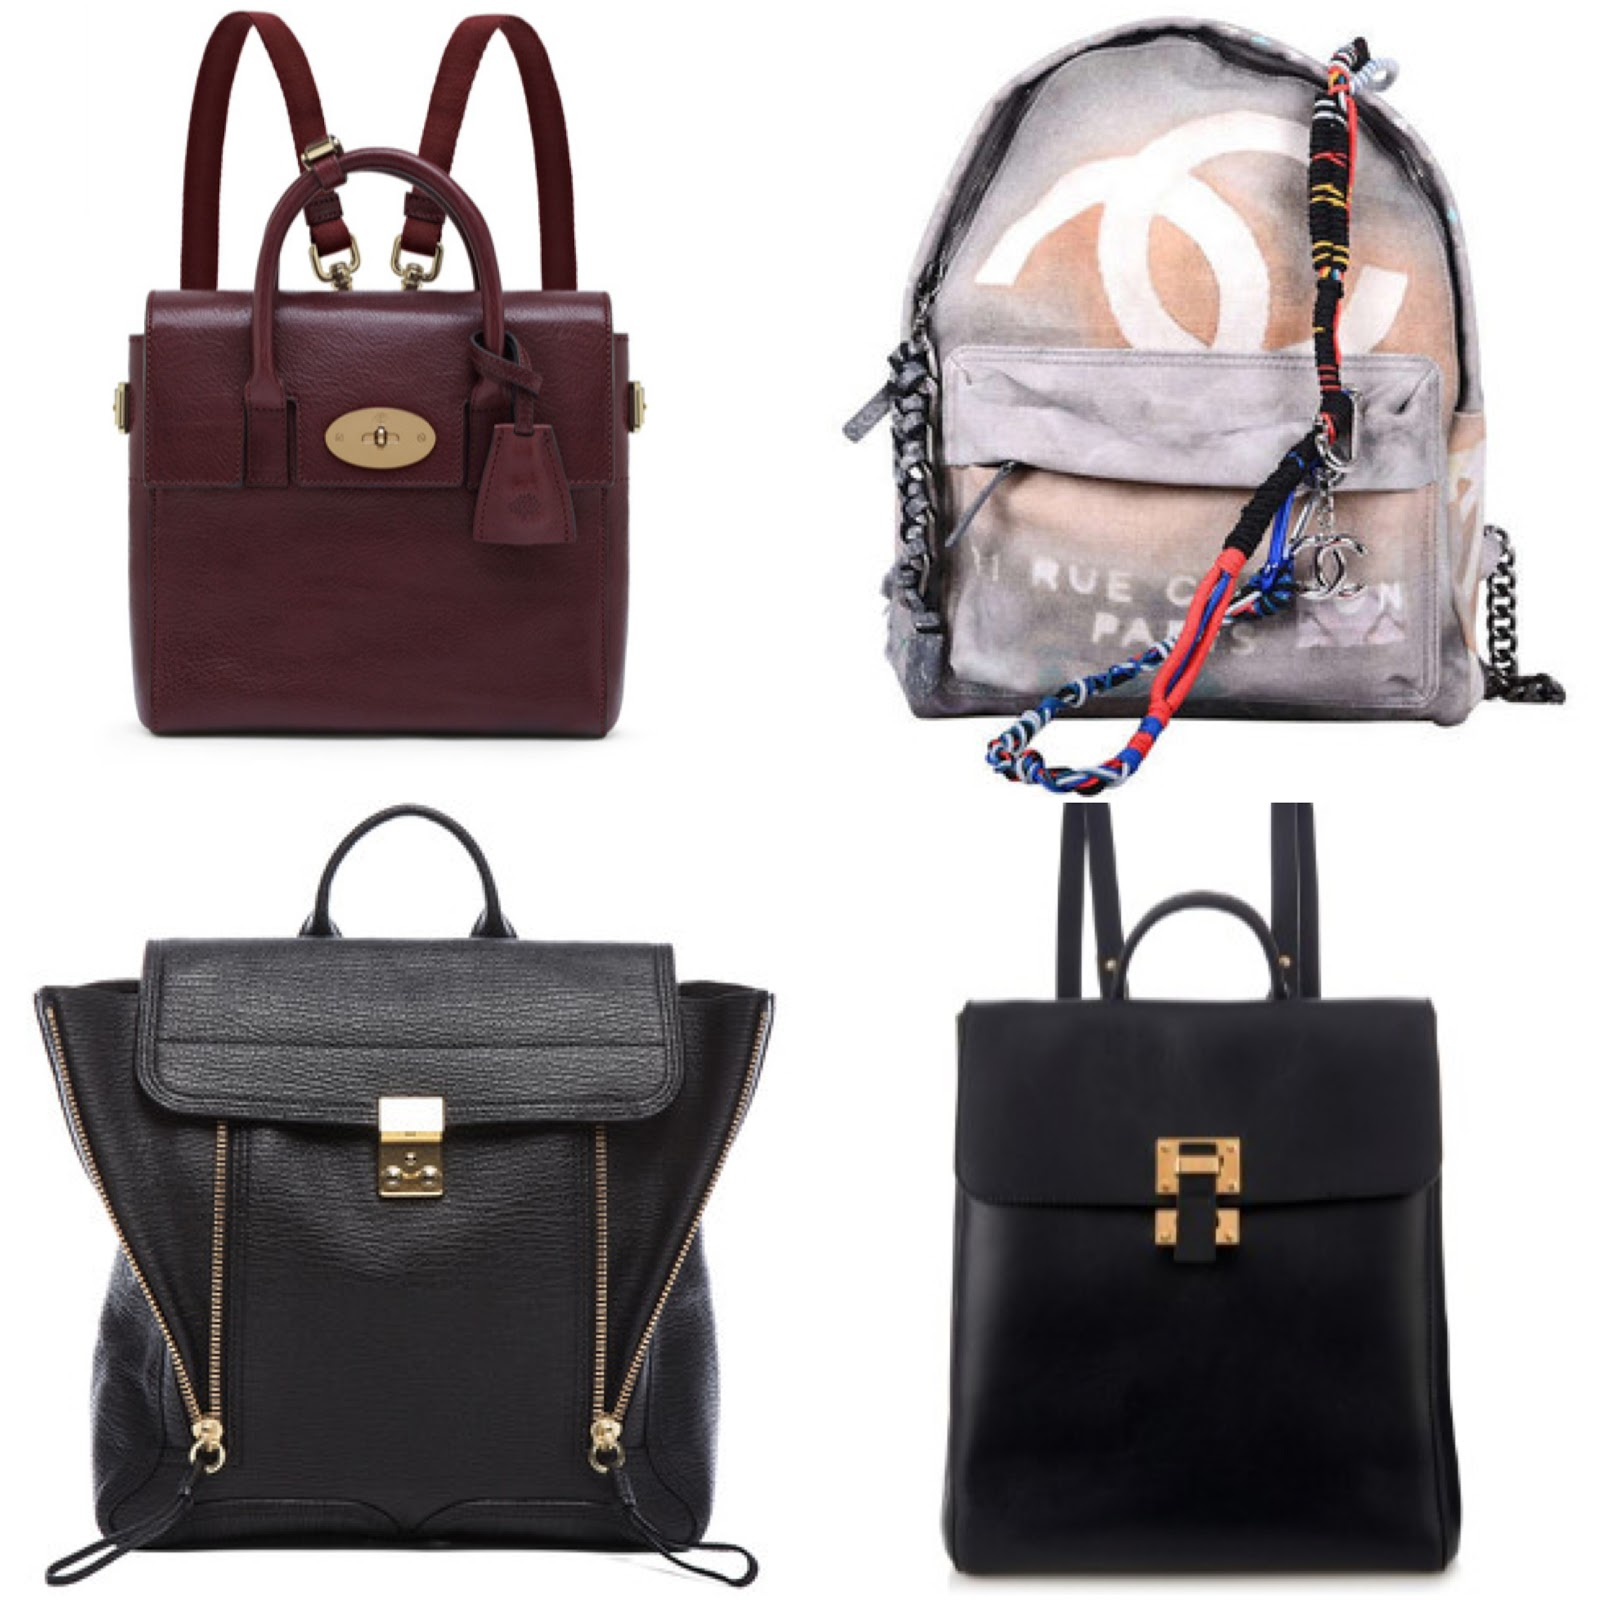 designer backpacks 6lz2  Obsessed By Beauty Curly With Designer Backpacks